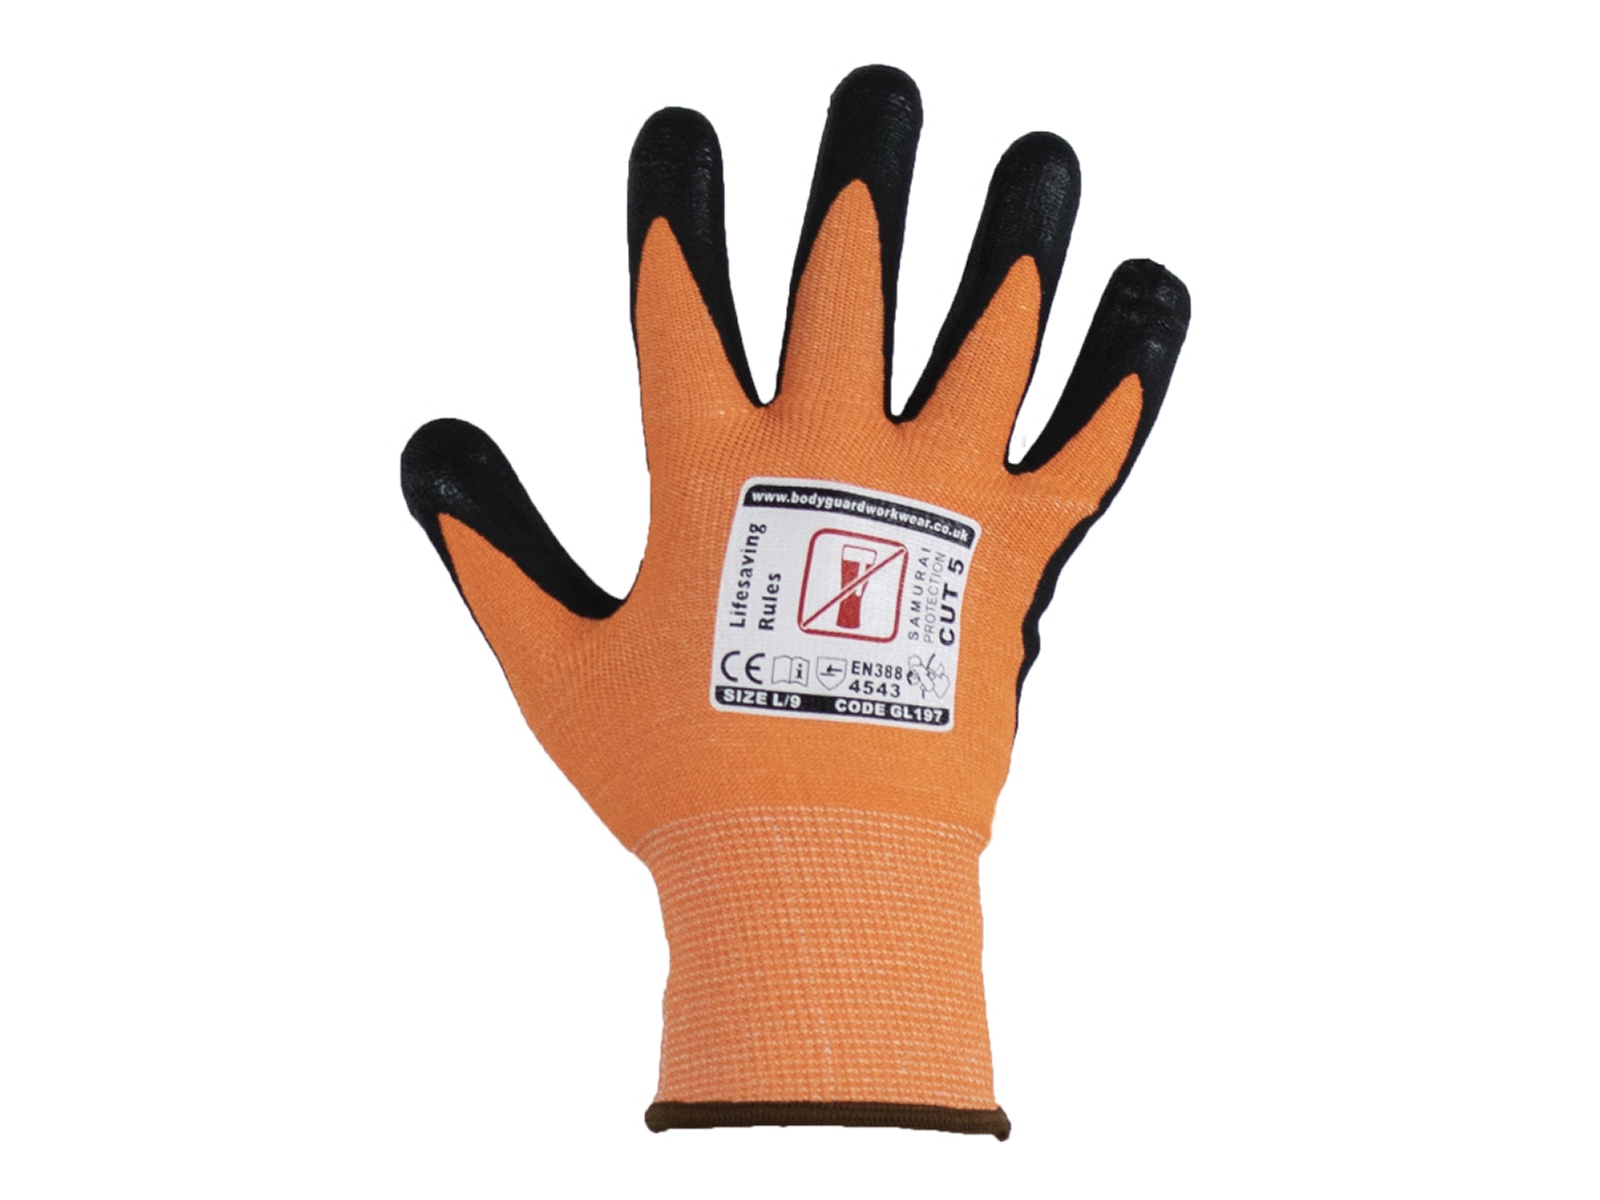 Samurai Lite Cut 5 Safety Glove w/ Touch Screen Technology - Multipack